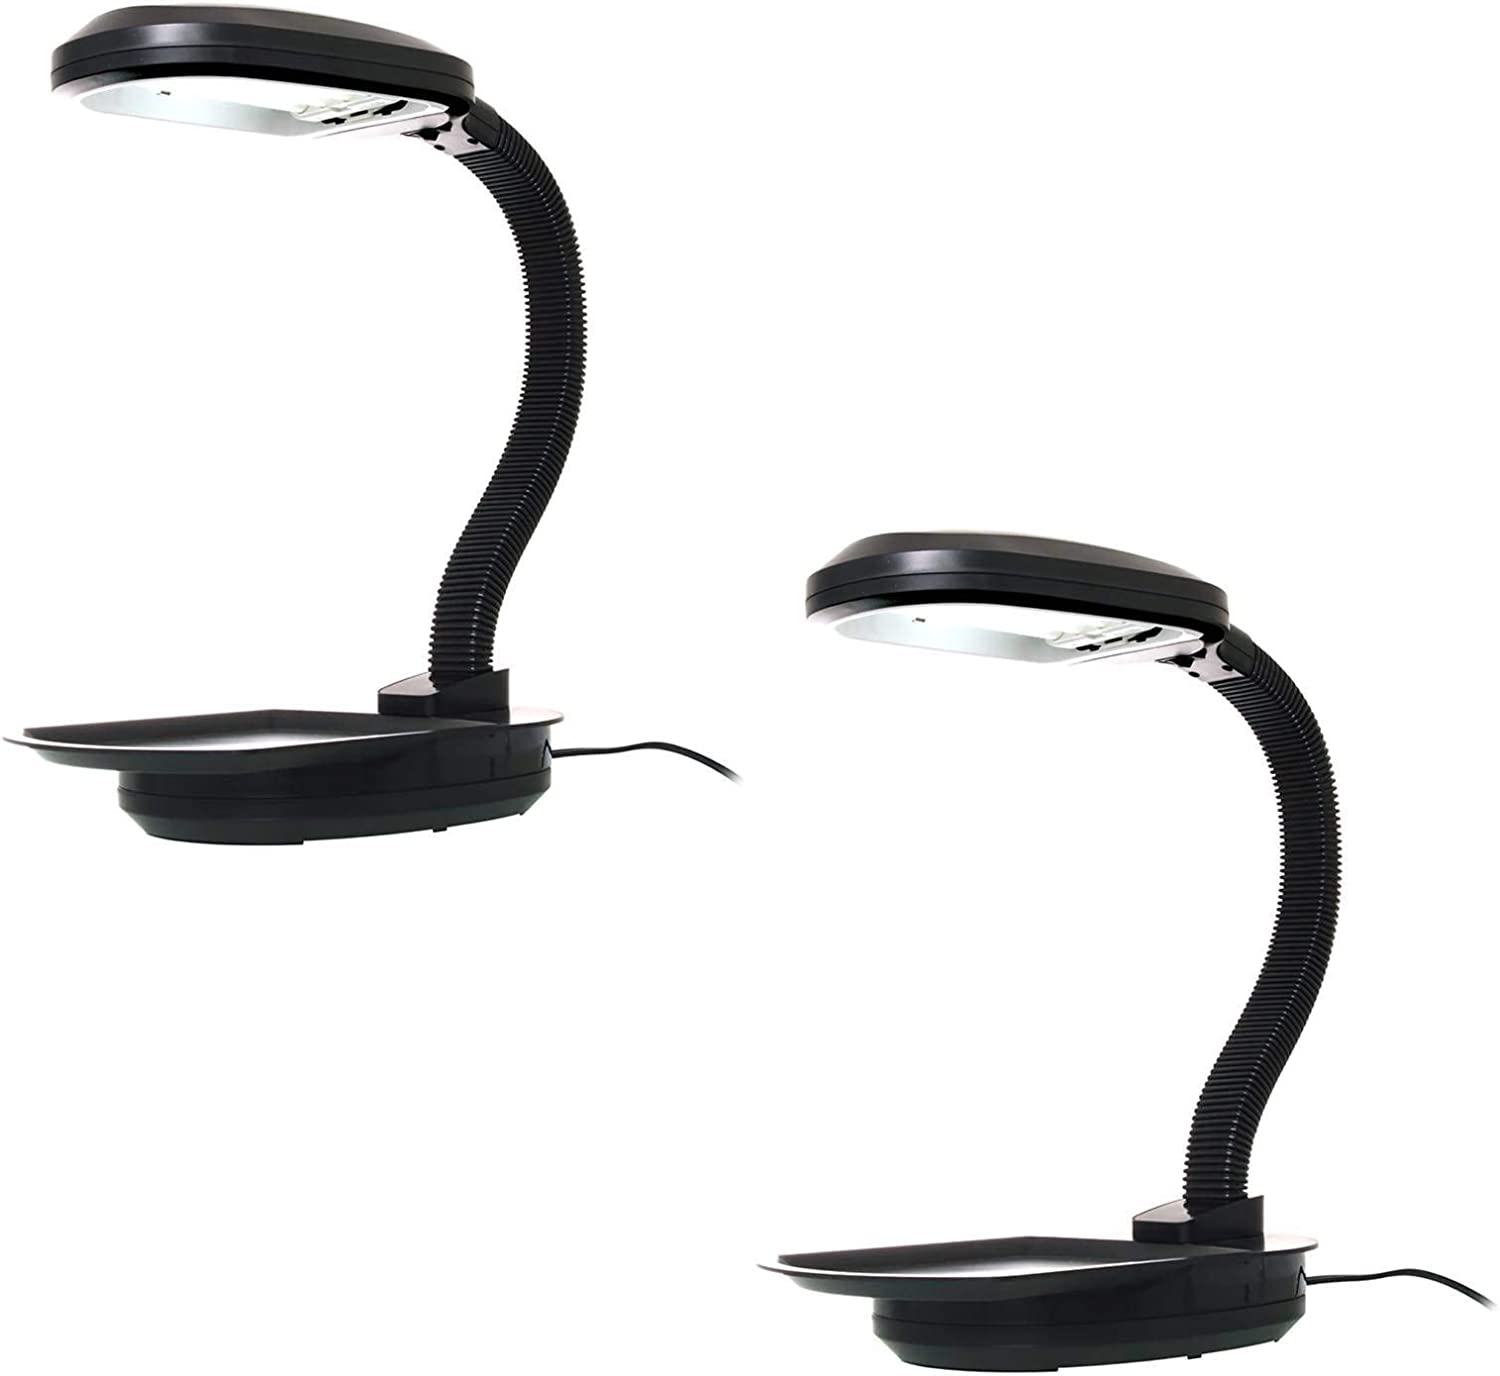 Hydrofarm Agrobrite 27 Watt Indoor Adjustable Desktop Grow Plant Light (2-Pack)